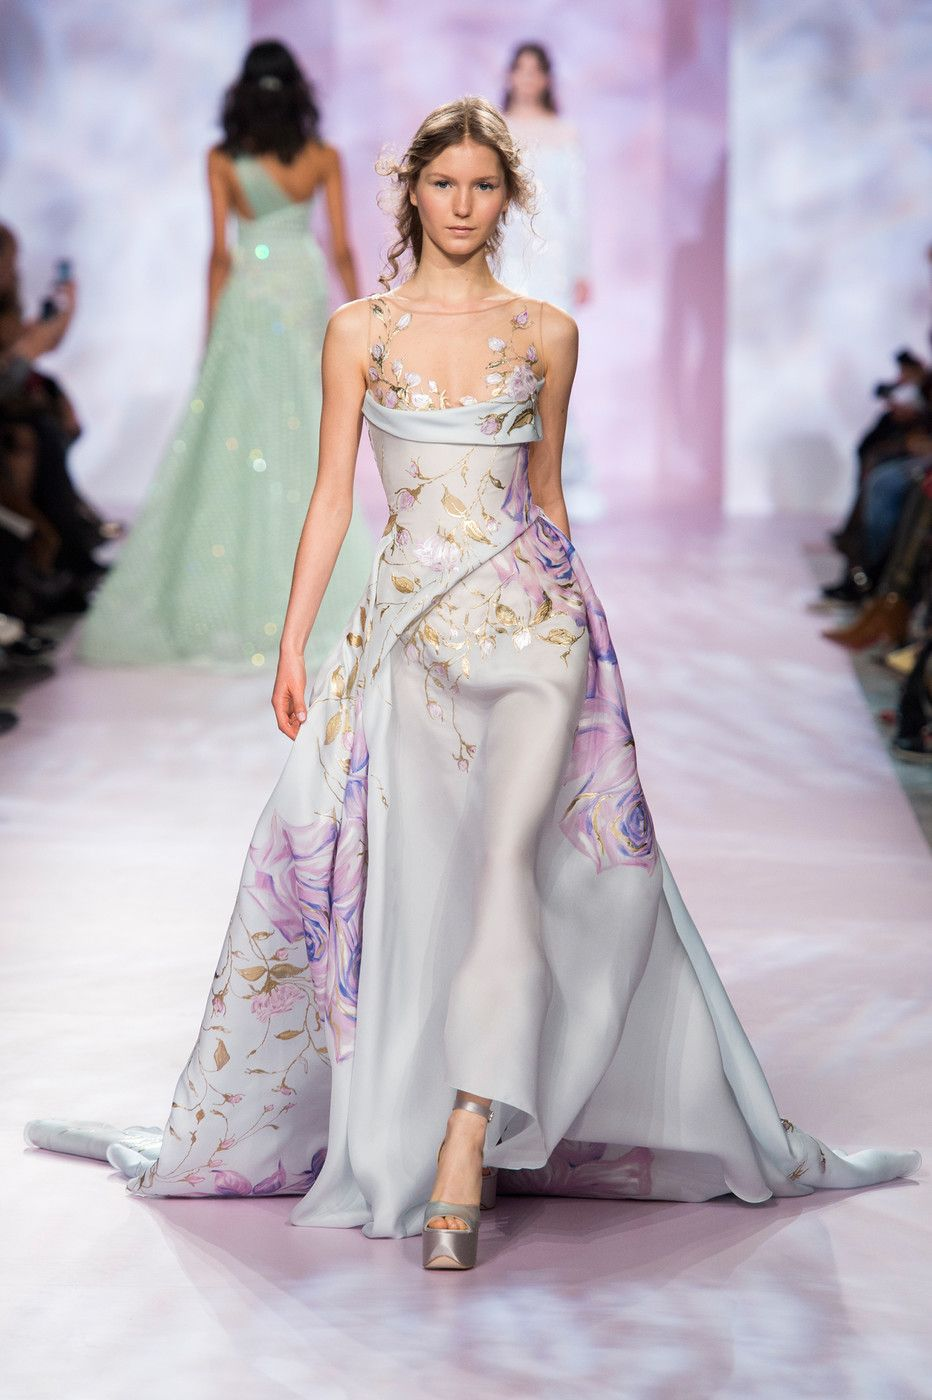 c1b0c23247ed Georges Chakra Couture, Spring 2017 - Couture's Most Beautiful Spring 2017  Runway Gowns - Livingly